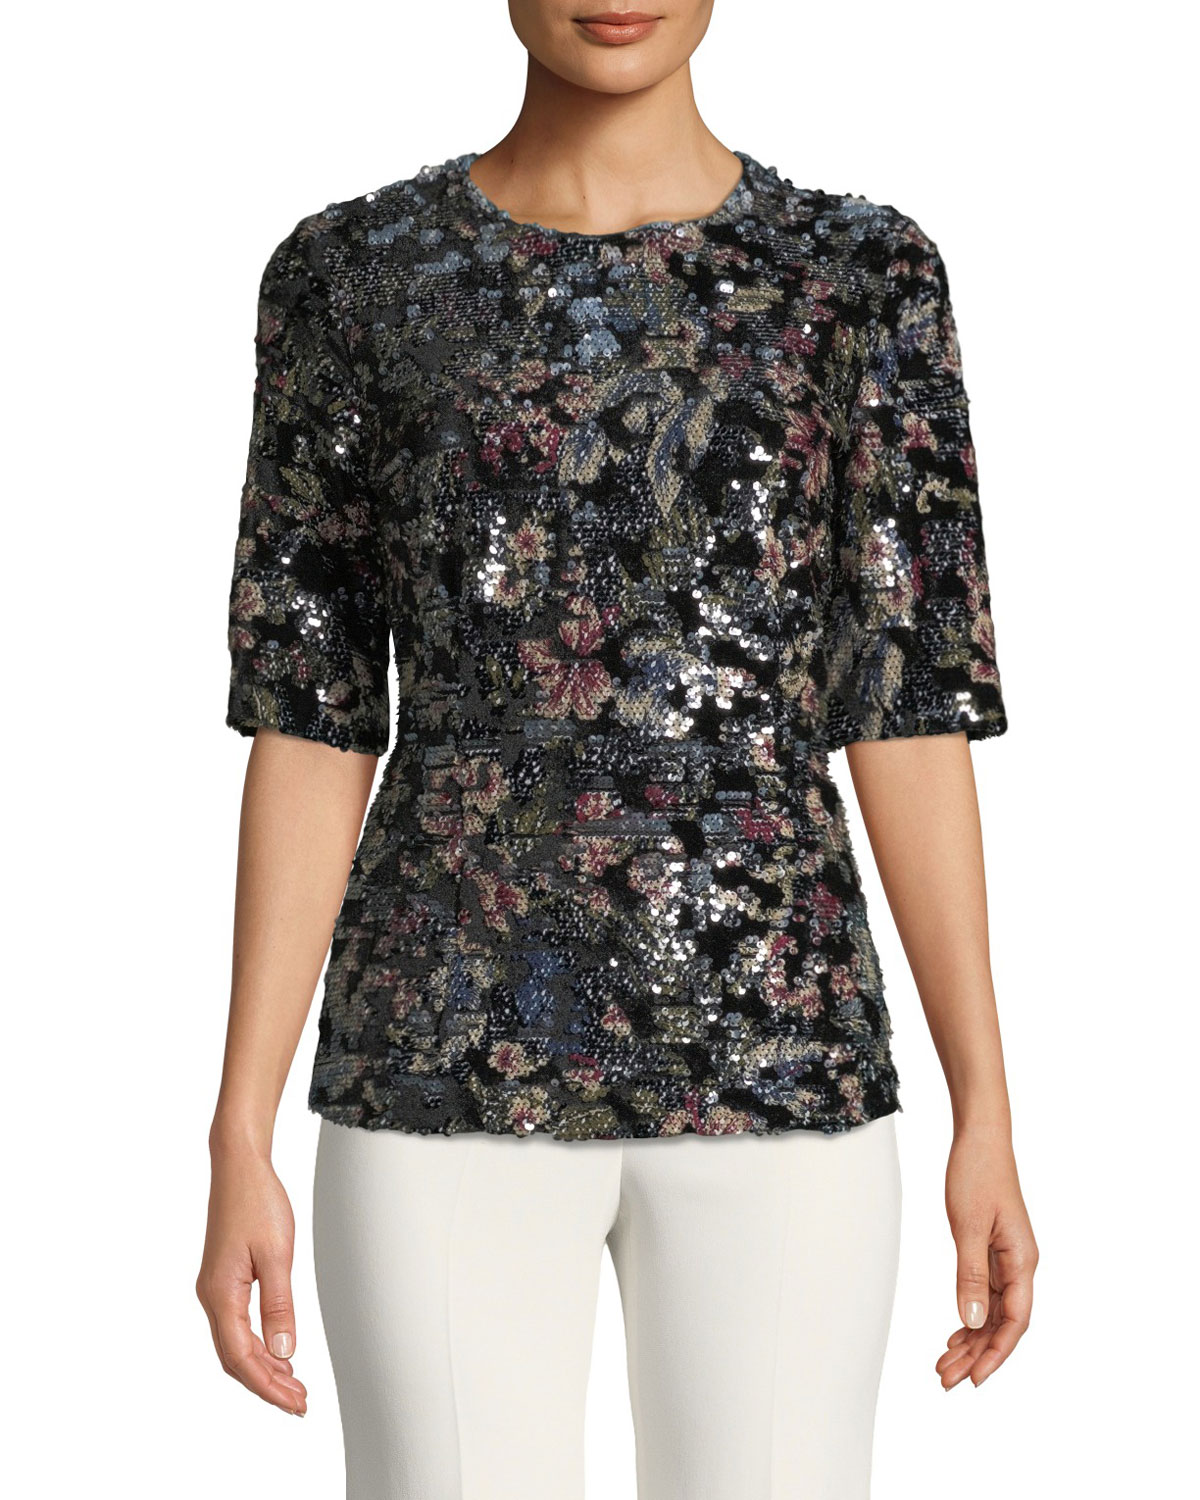 Fitted Sequin Floral Top